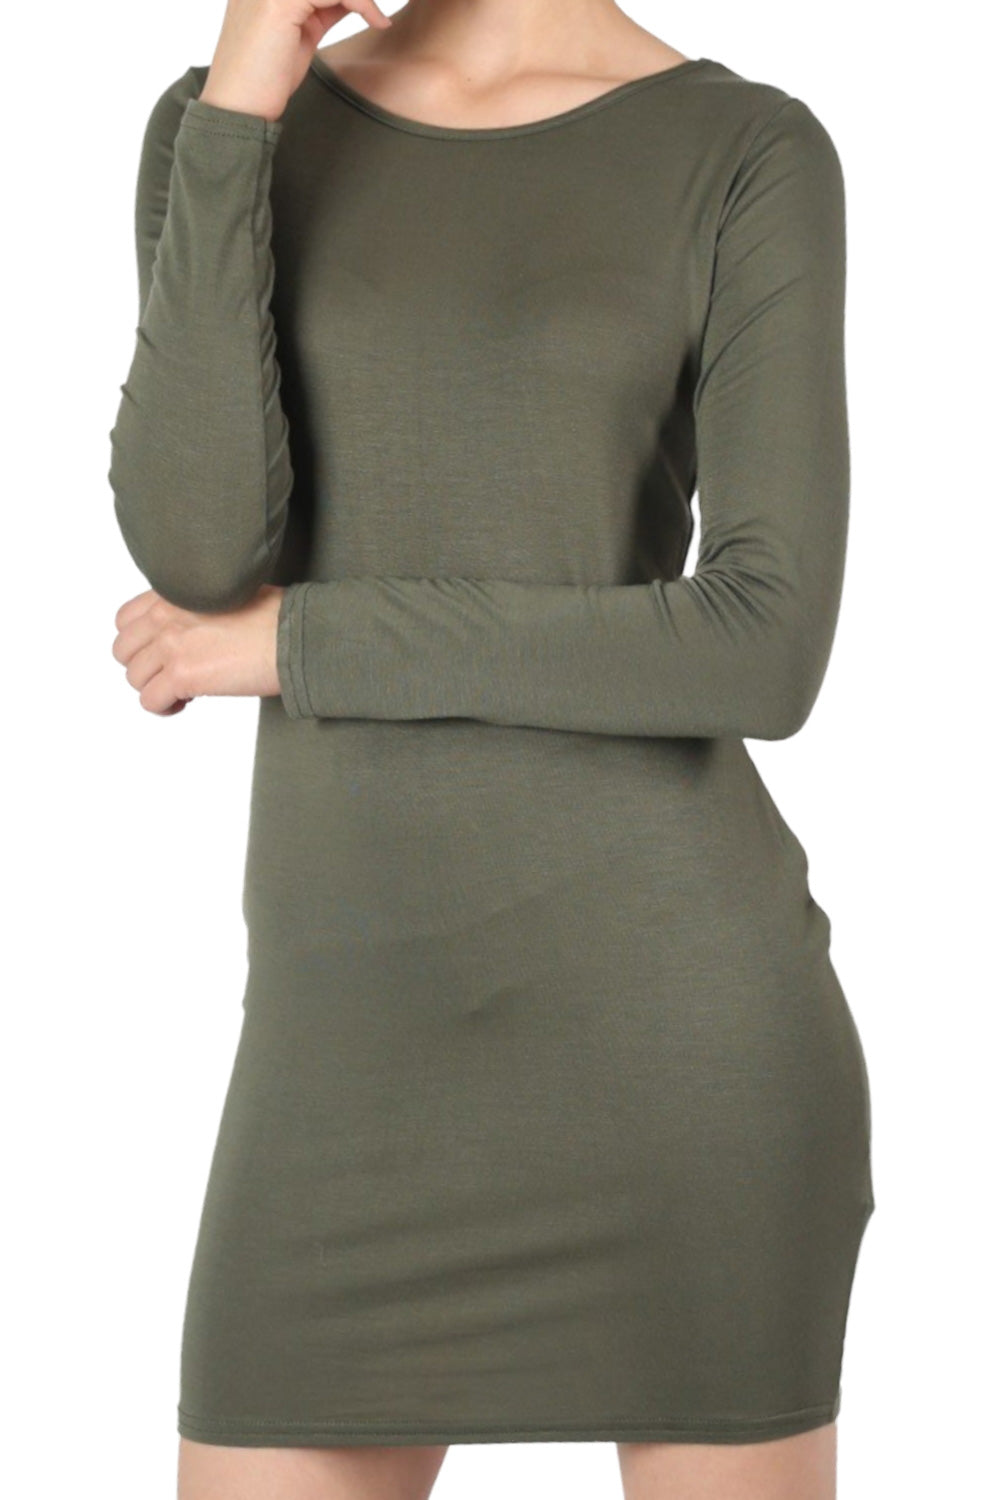 Plain Long Sleeve Bodycon Dress in Khaki Green